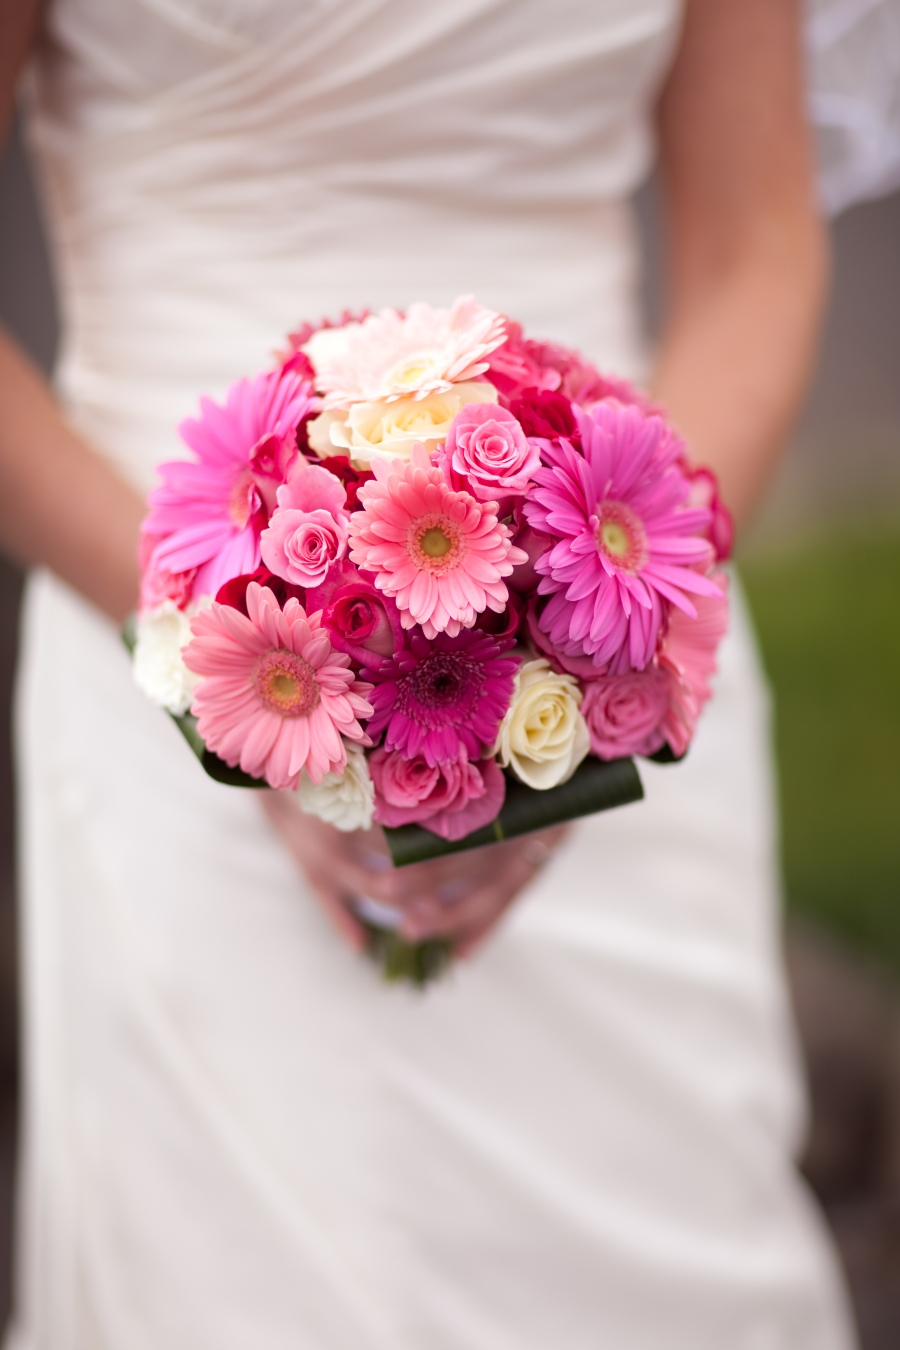 35 beach wedding bouquets destination wedding details beach wedding bouquet pink gerbeera daisies and roses junglespirit Gallery